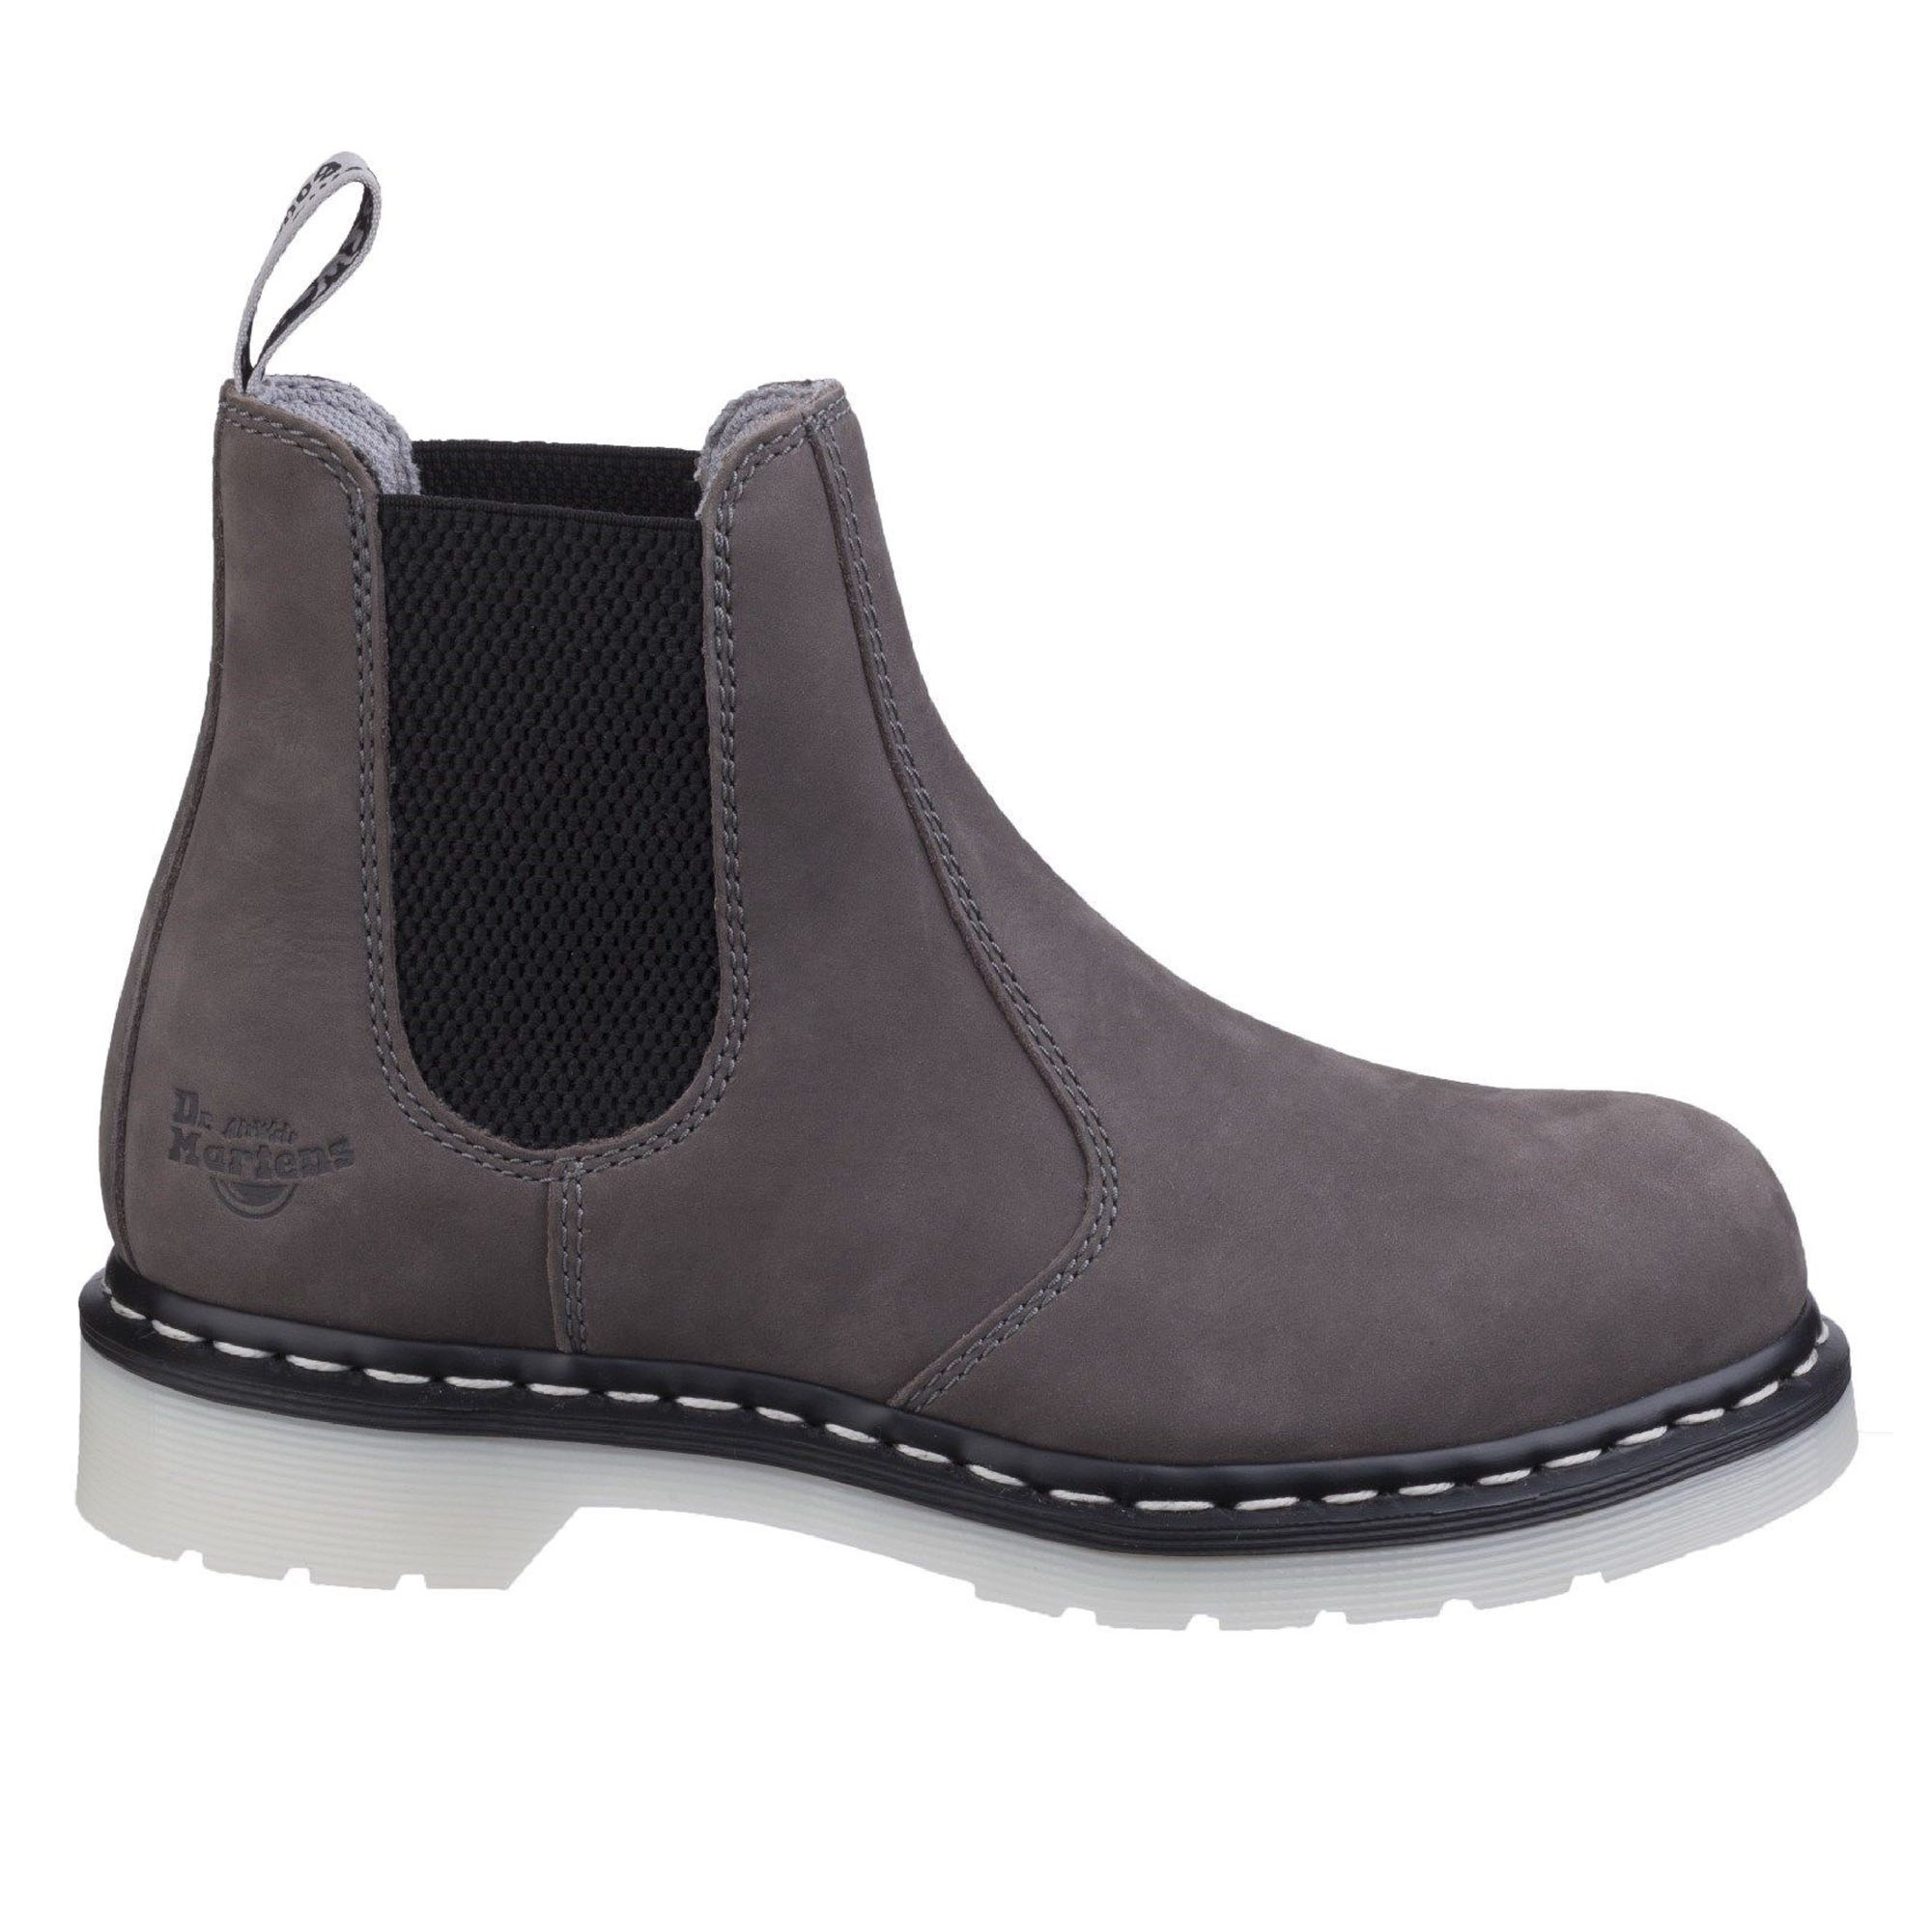 2bc6cfa4483 Dr Martens,ARBARCHELSEA,Arbor Chelsea Safety Boot - Grey